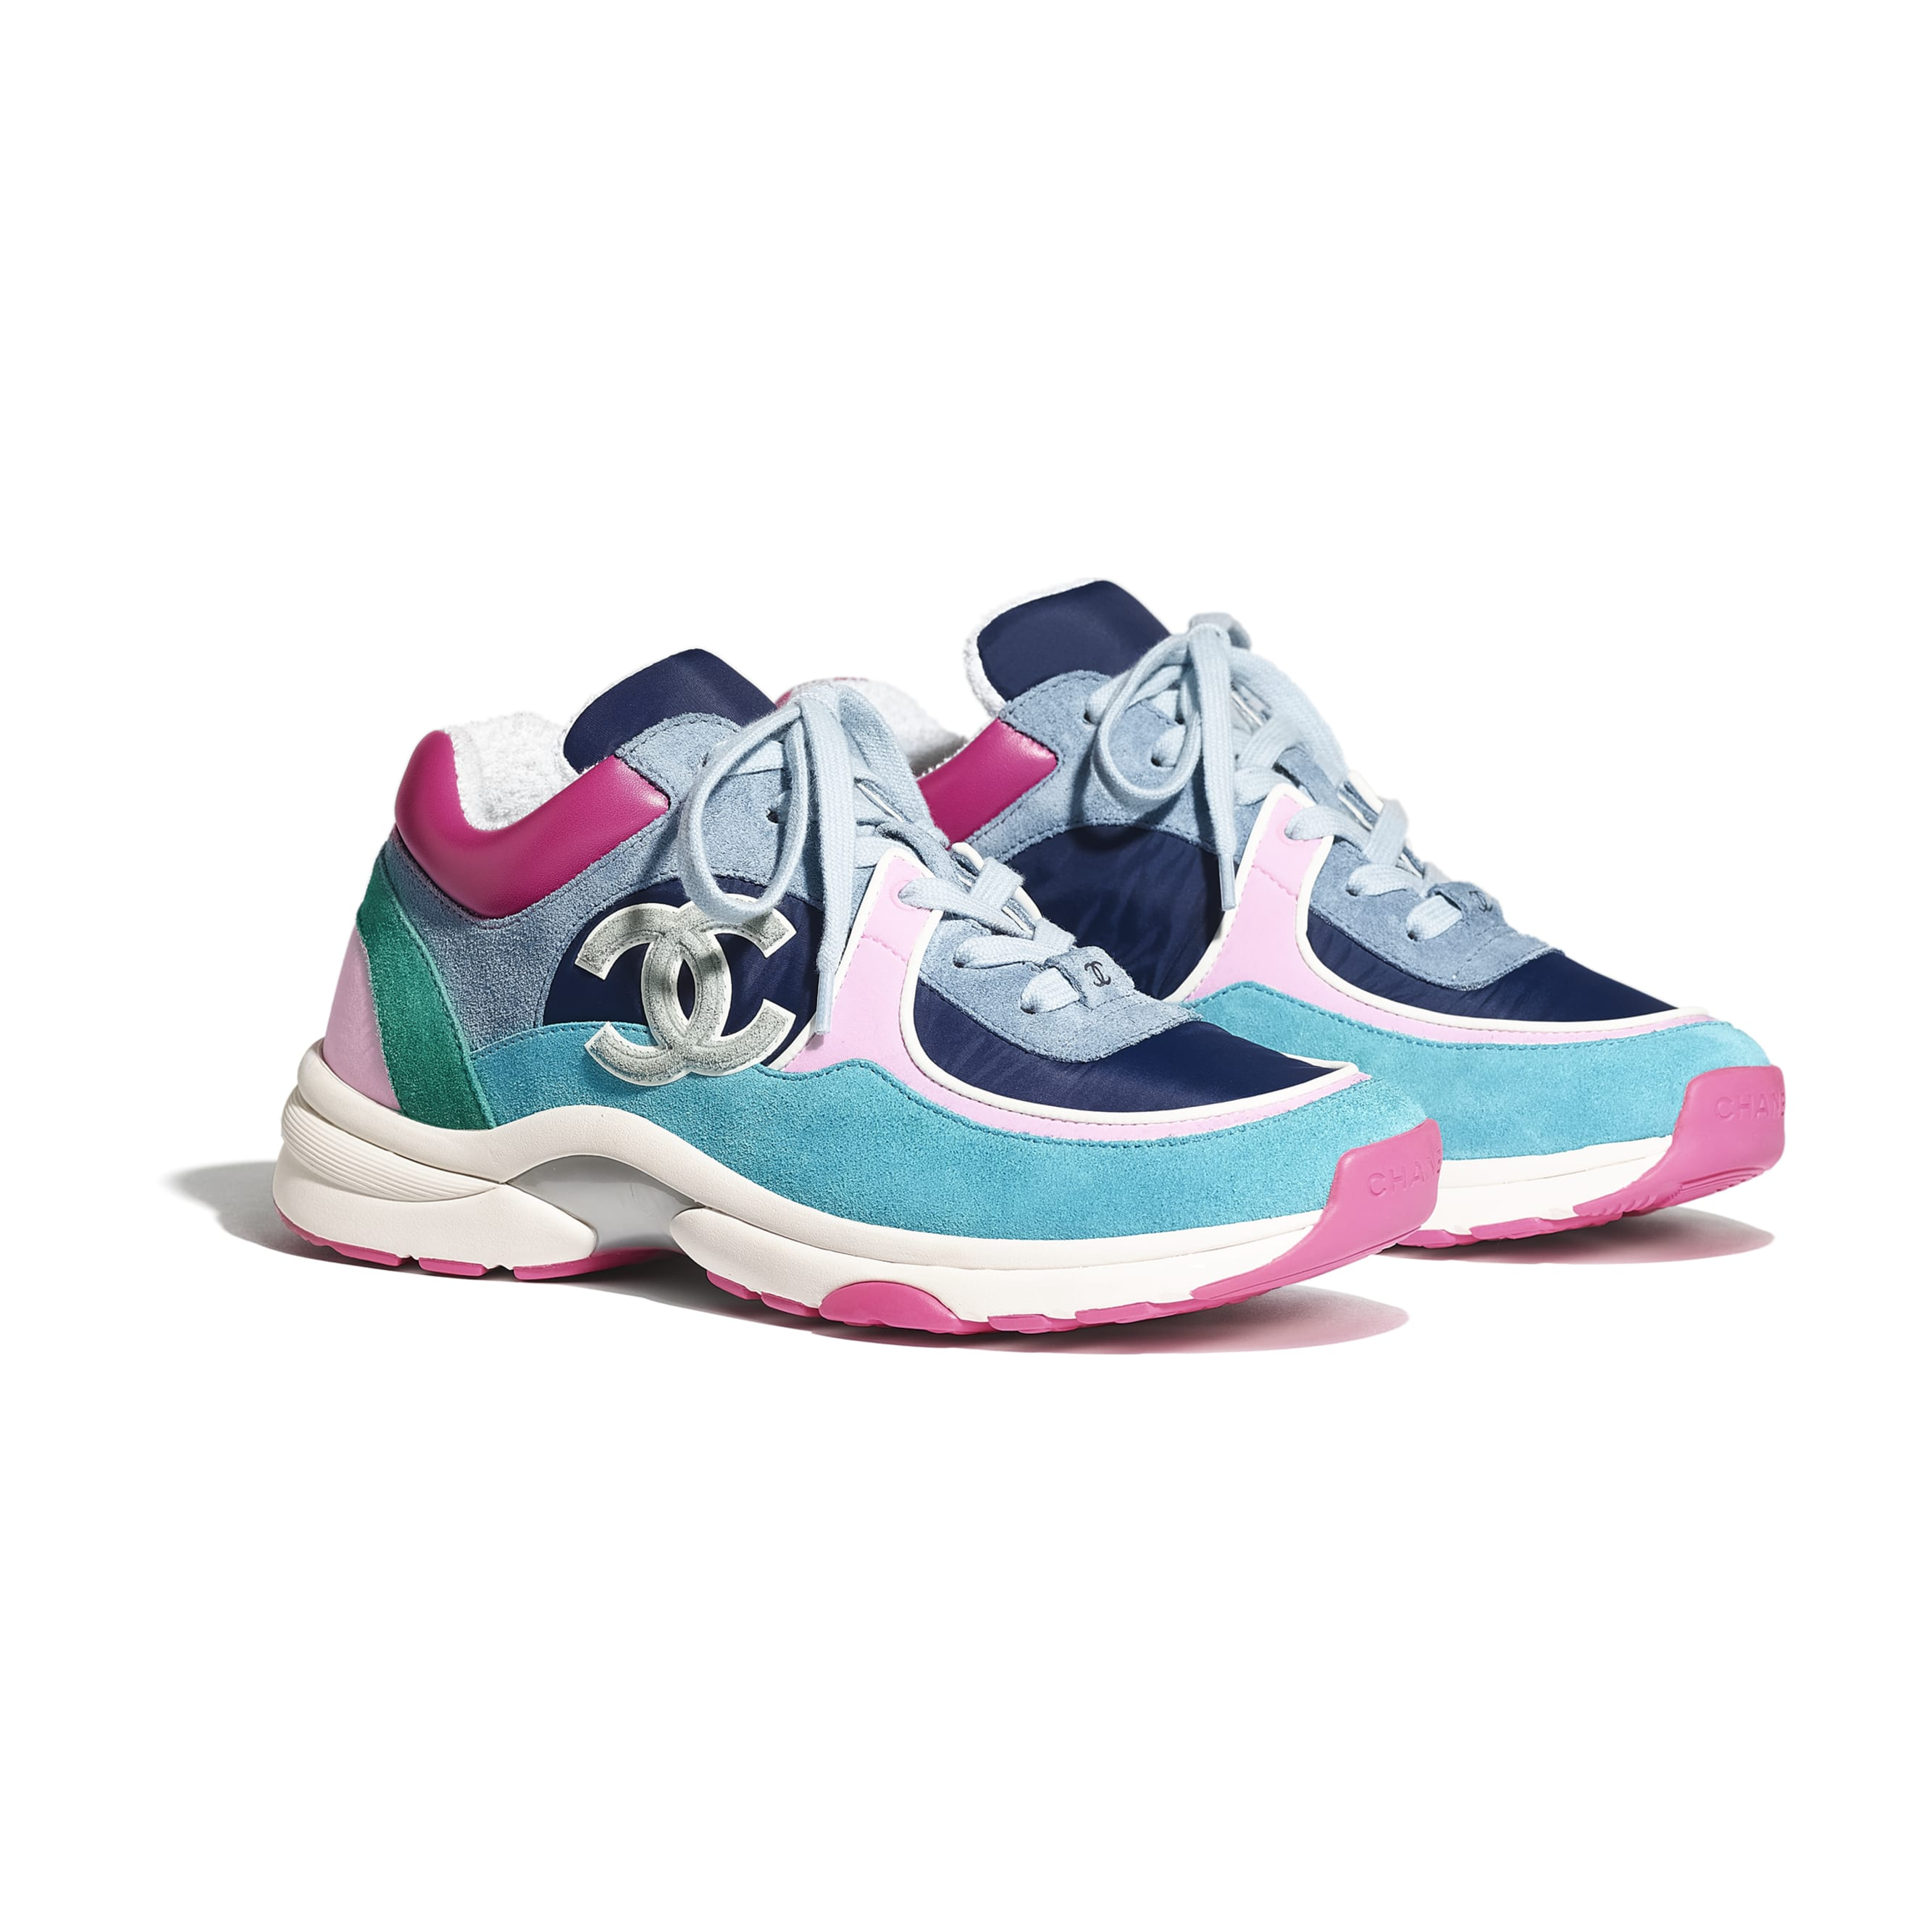 Sneakers - Blue, Pink & Turquoise - Velvet Calfskin & Mixed Fibers - CHANEL - Alternative view - see standard sized version